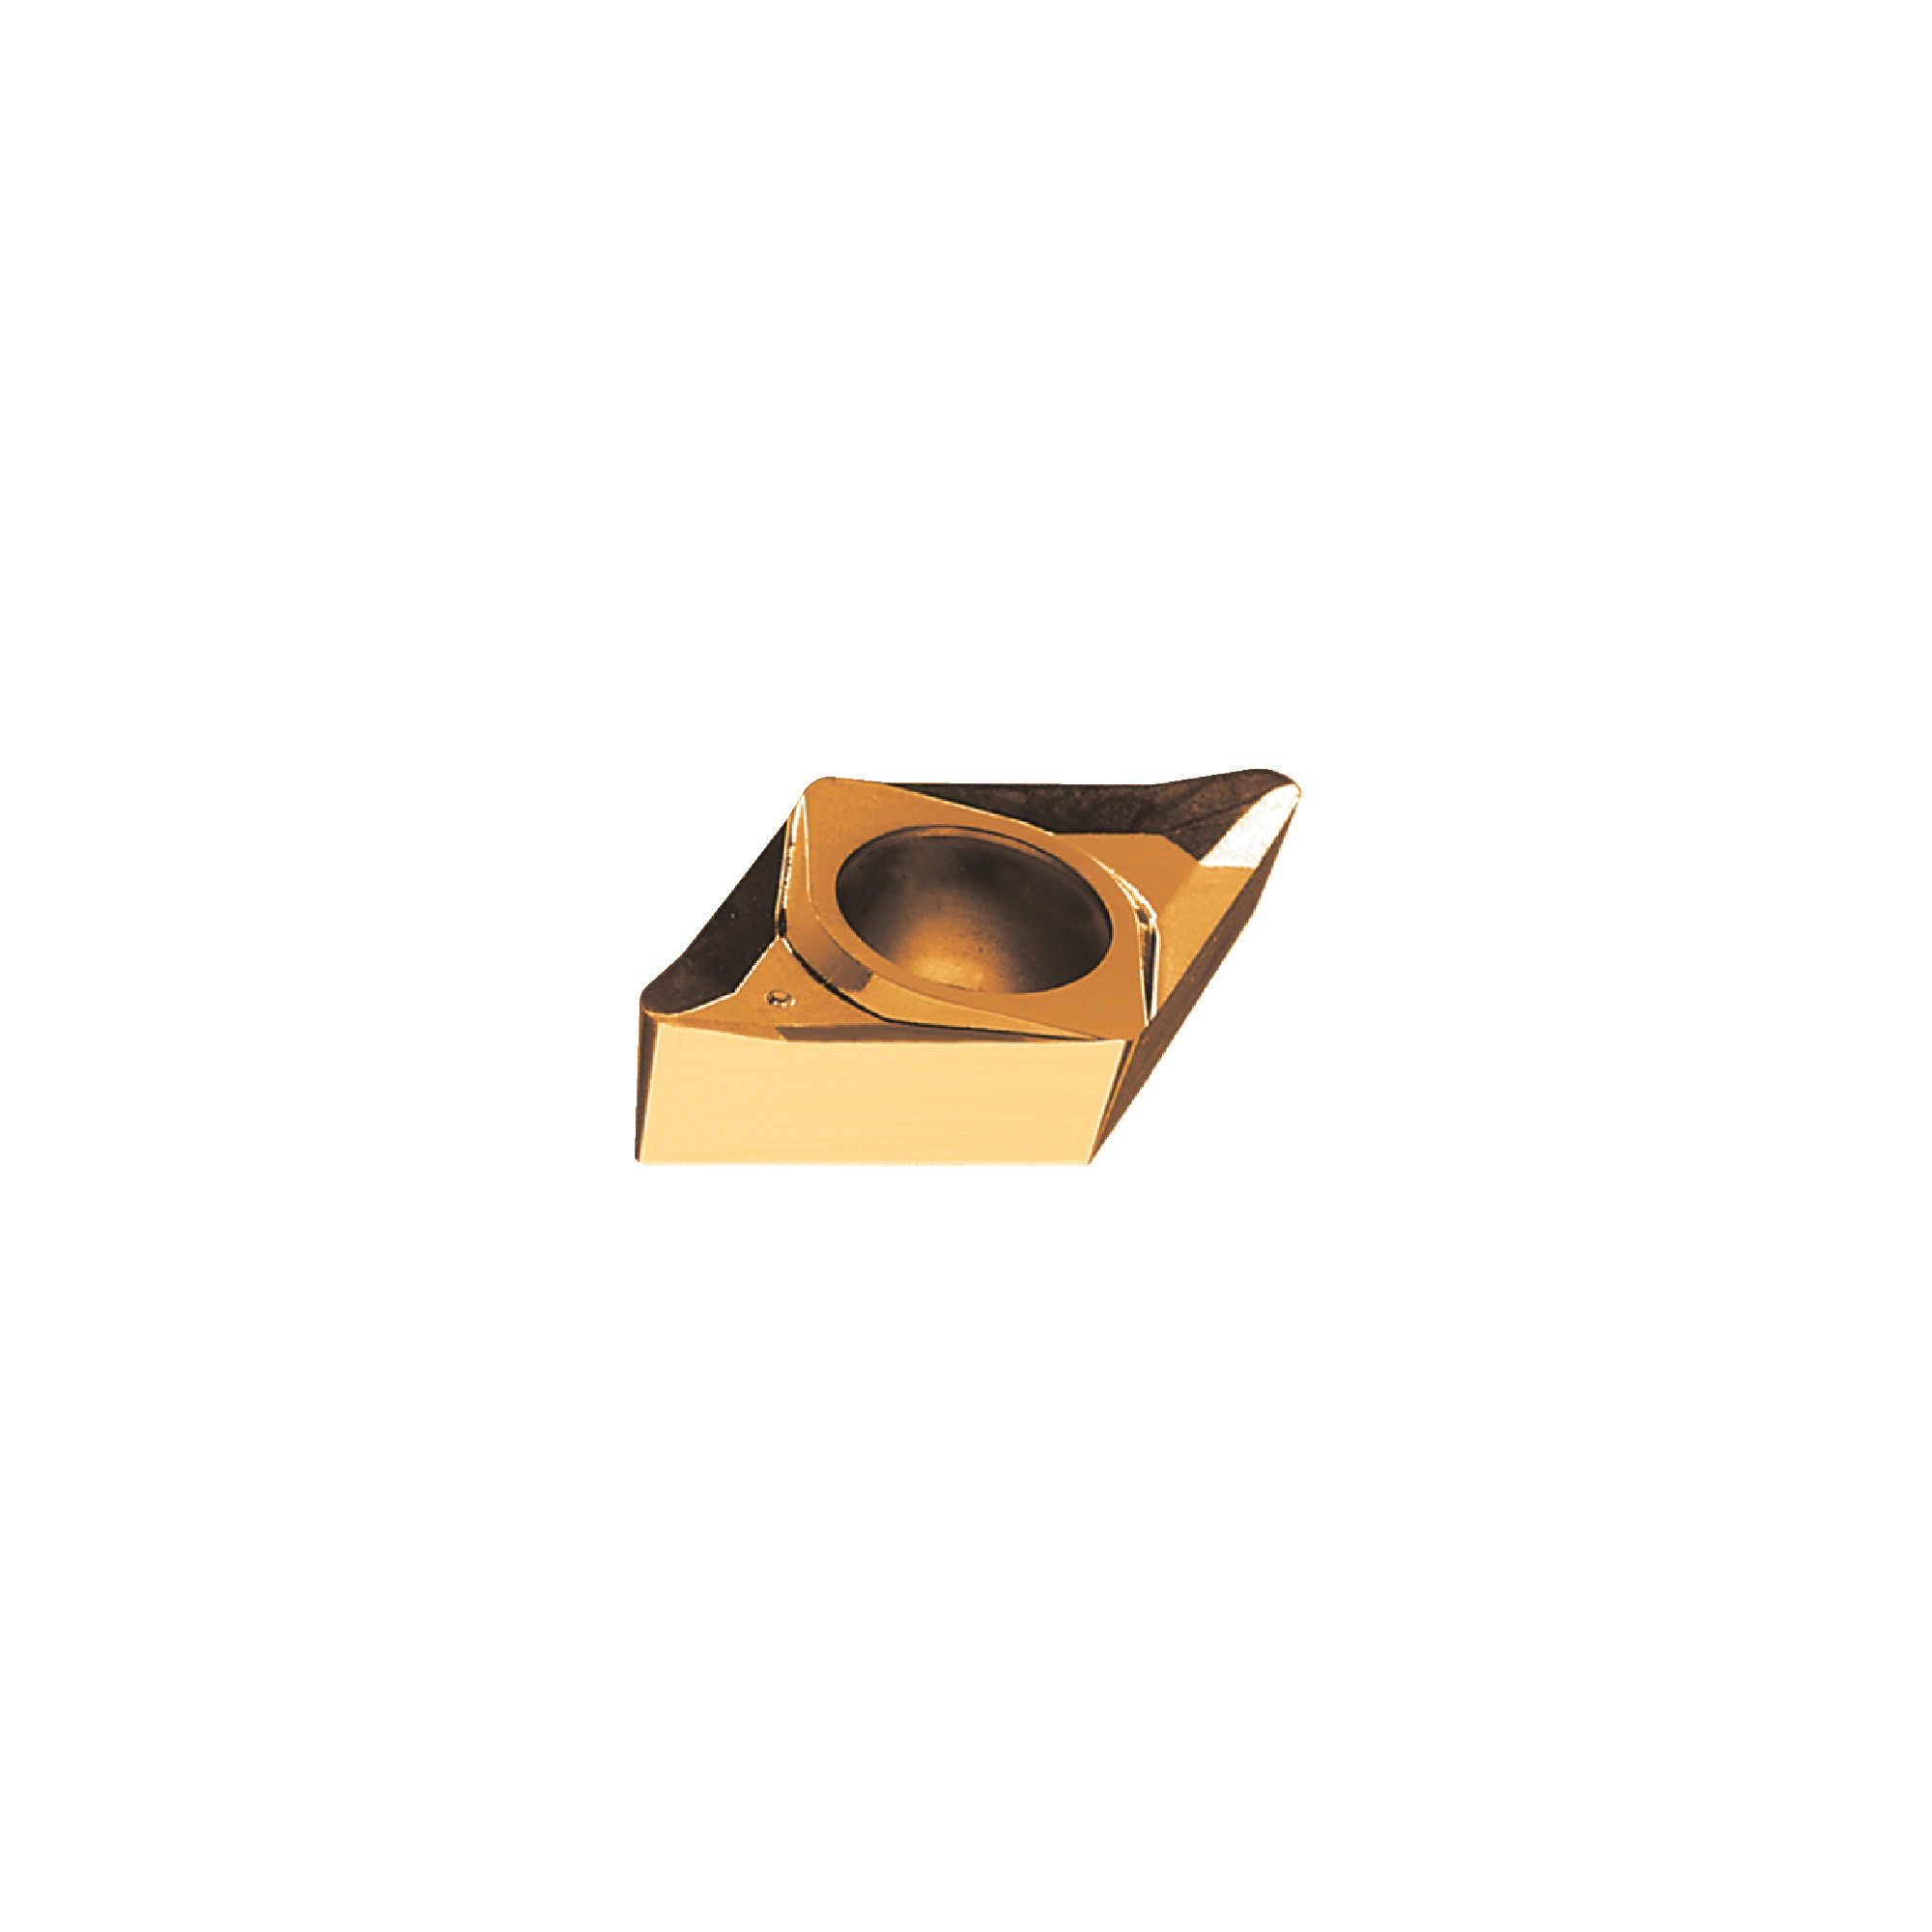 ARNO - DCGT3(2.5)0.5FN-ALU PVD1 - 55° Diamond / Indexable Carbide Turning Insert